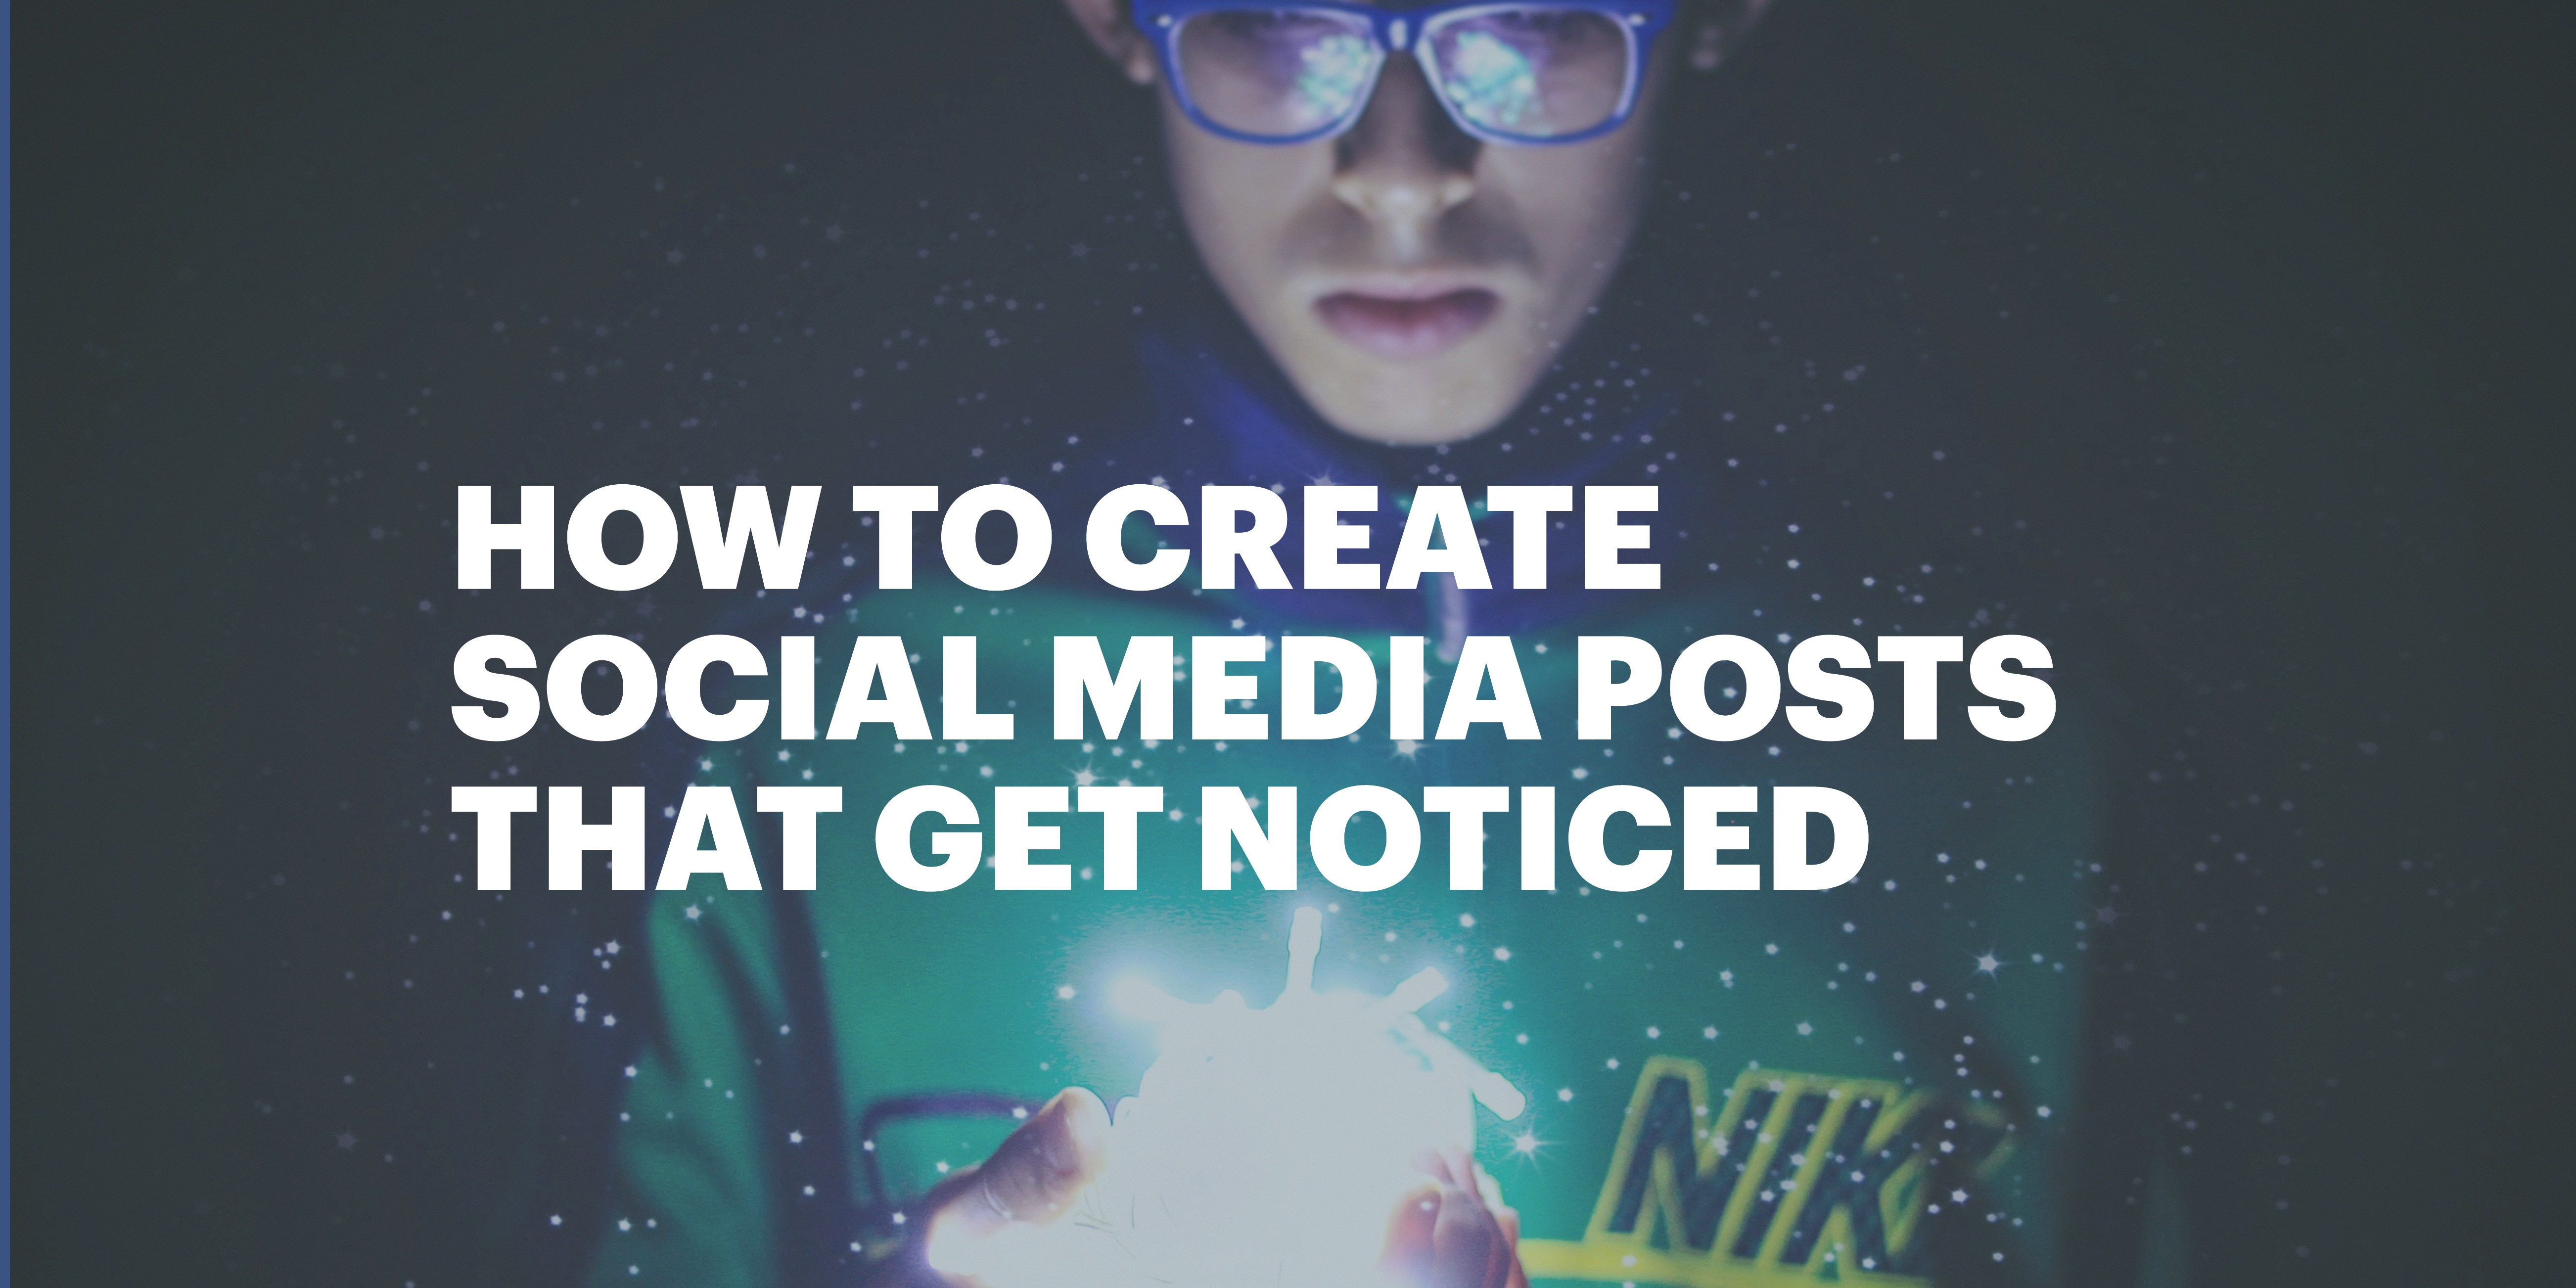 5 Social Media Graphic Design Tips To Boost Your Brand Presence